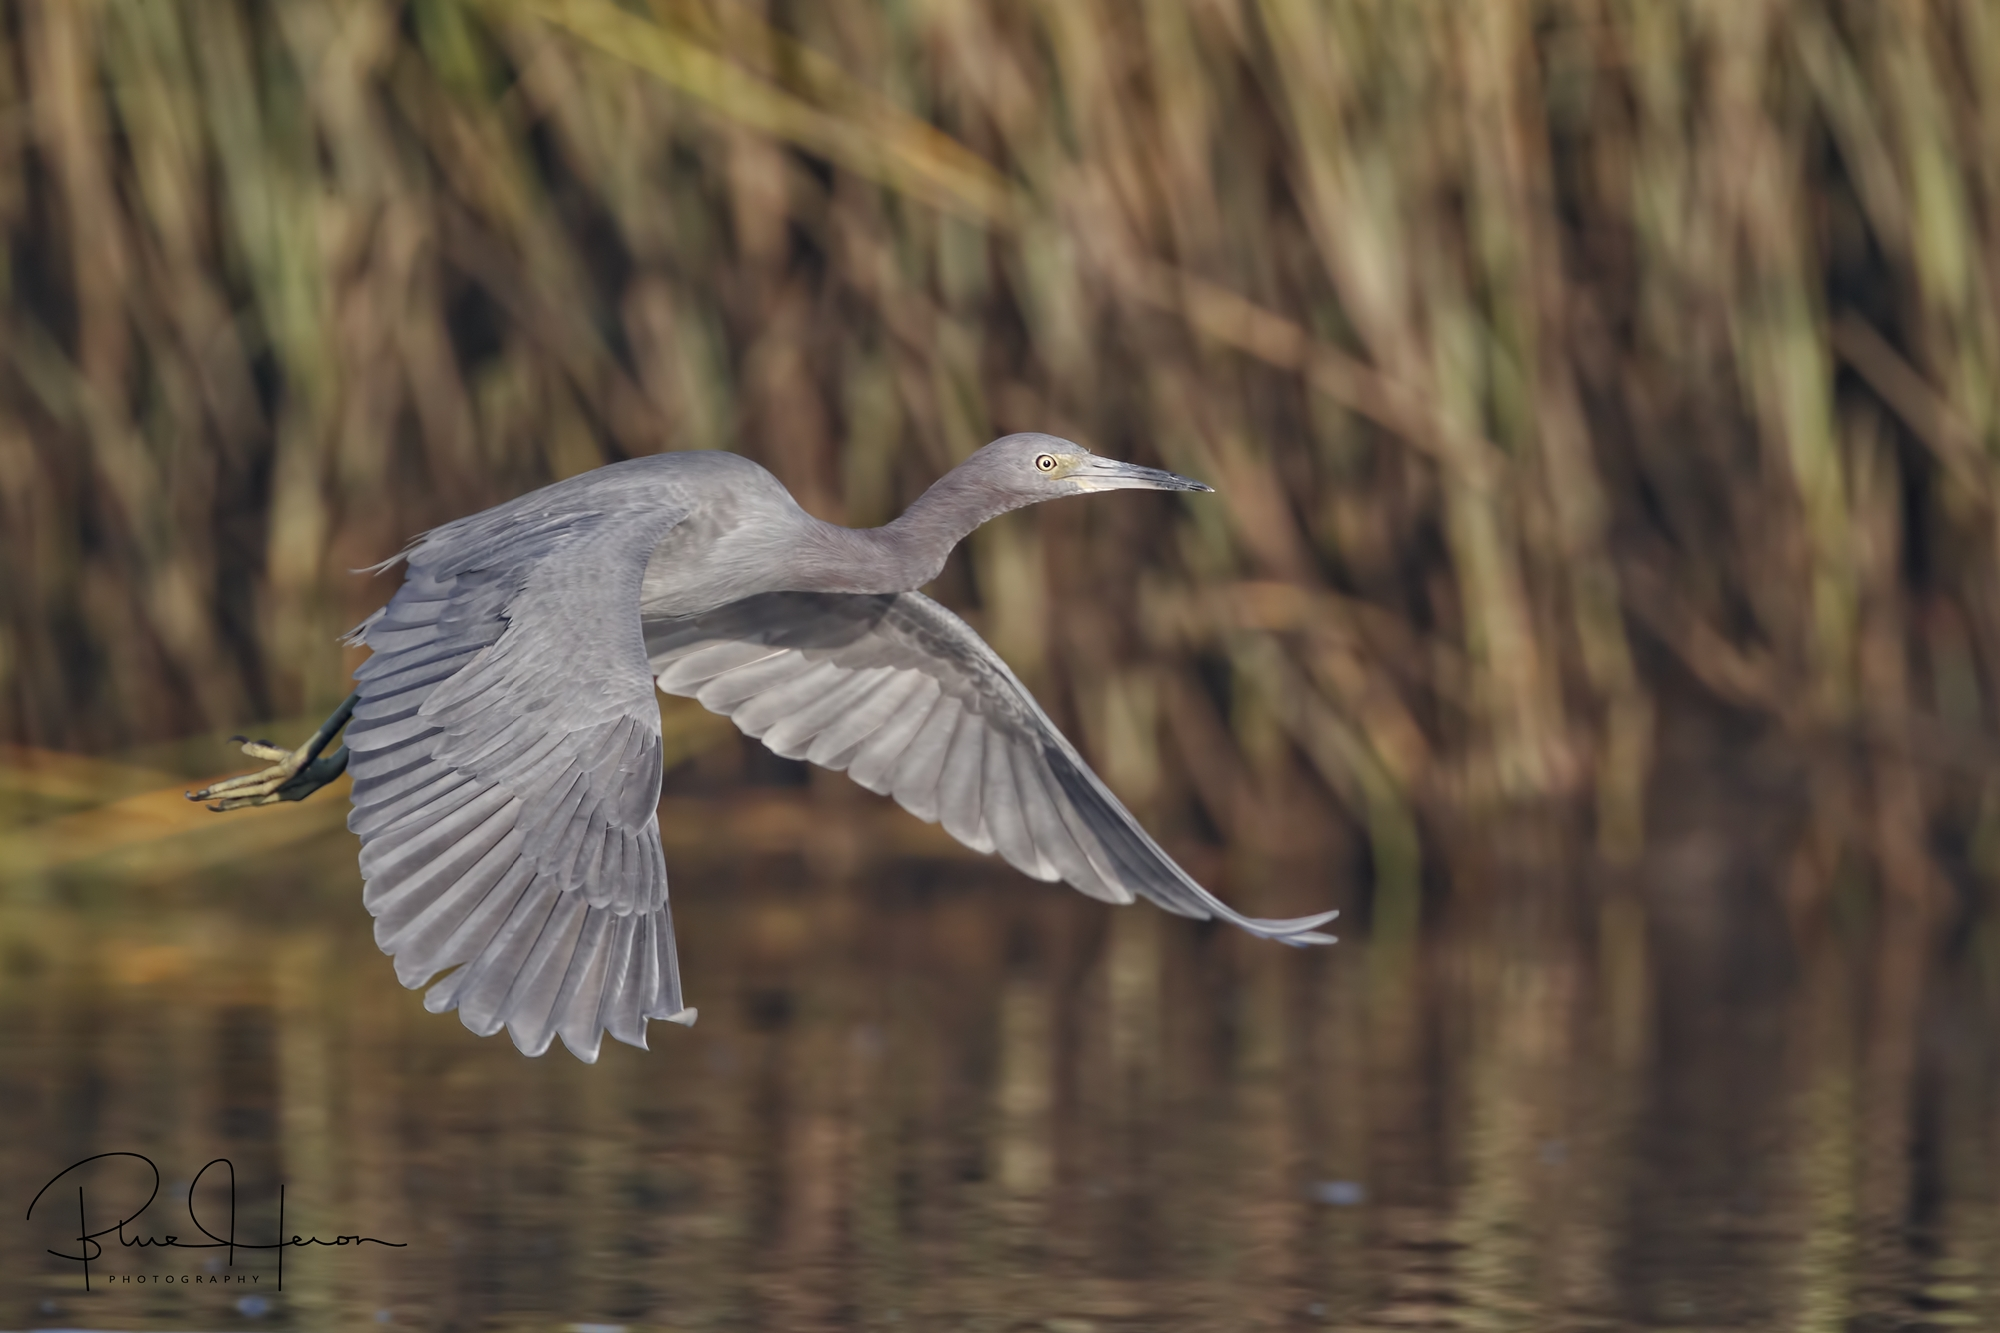 Broward Bob, the Little Blue Heron flies in for breakfast for second place …